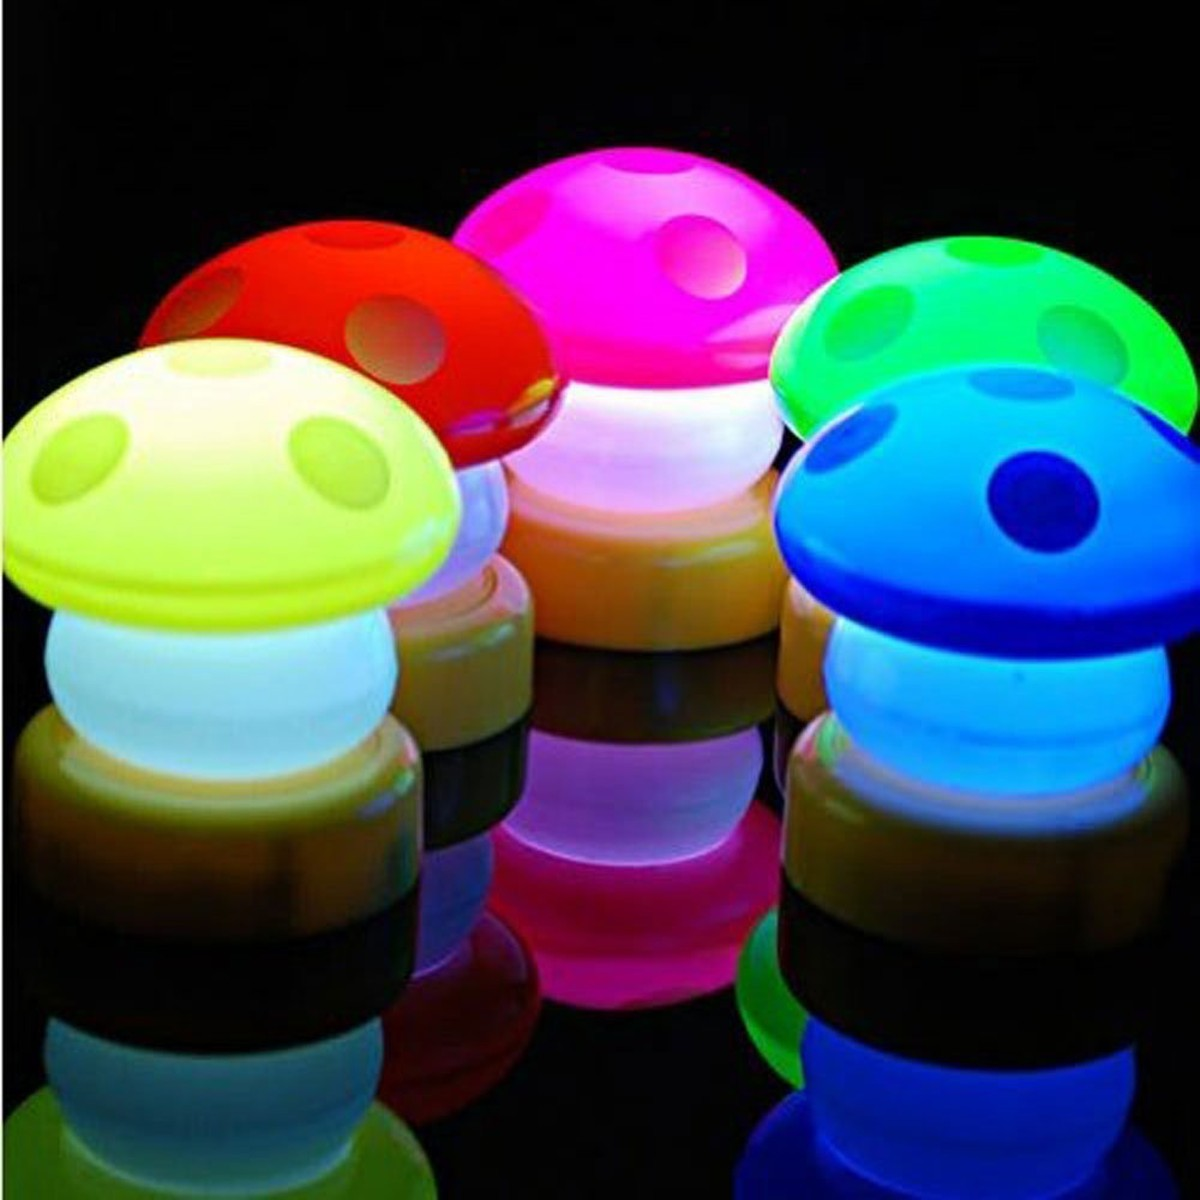 Colorful Mushroom LED Touch Lamp Night Light Novelty Lighting For Kids Baby Bedroom Home Decor Wedding Party Christmas Gifts